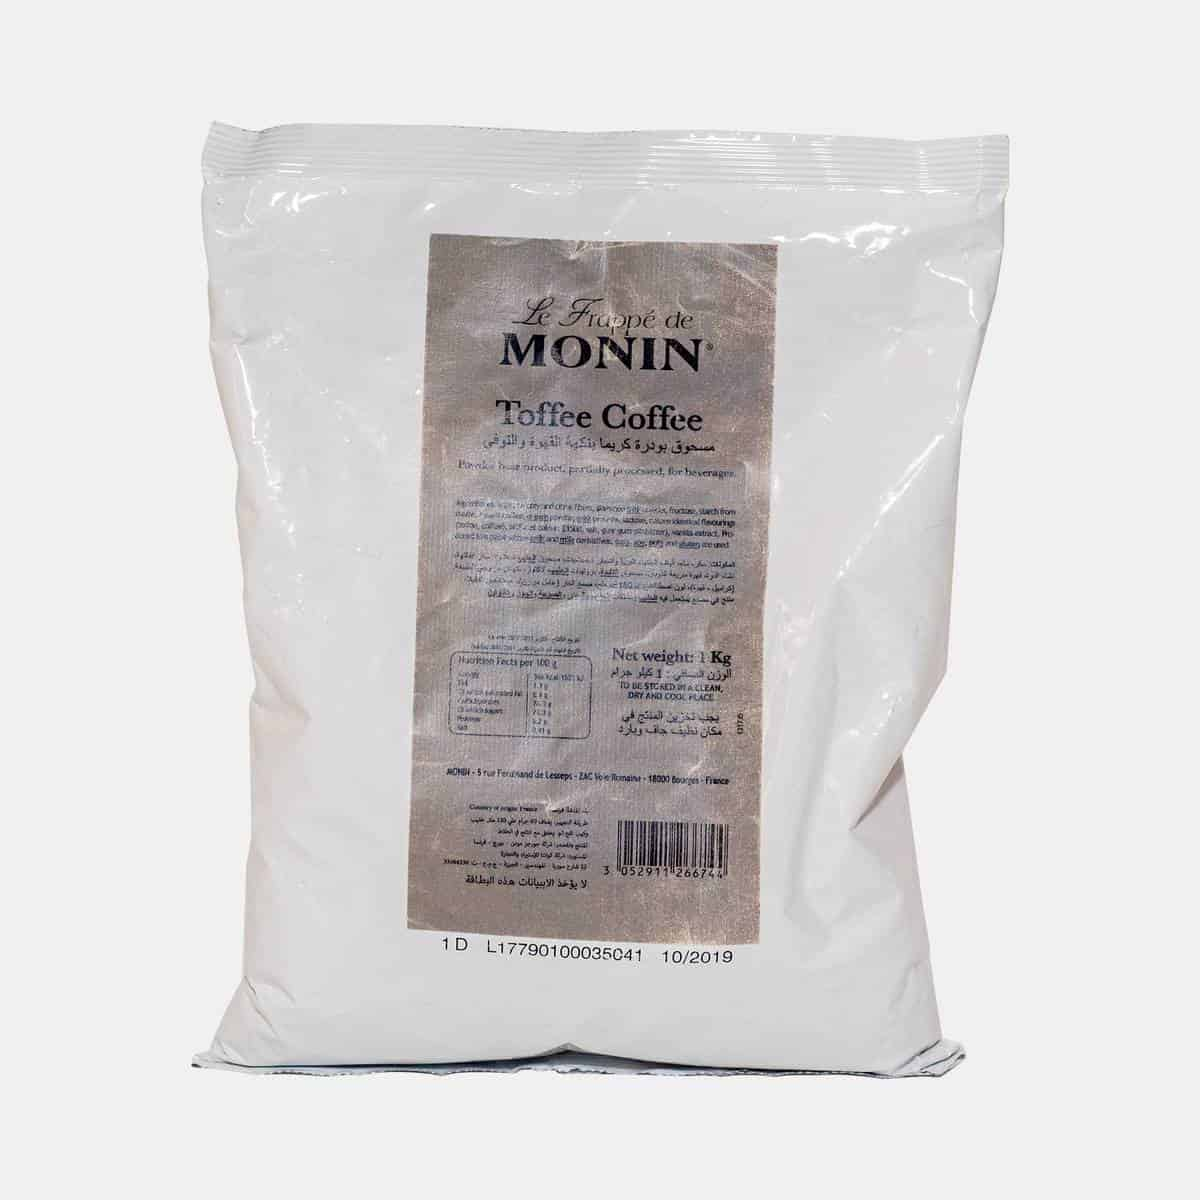 Monin Toffee Coffee Frappe Base Powder Sealed Bag